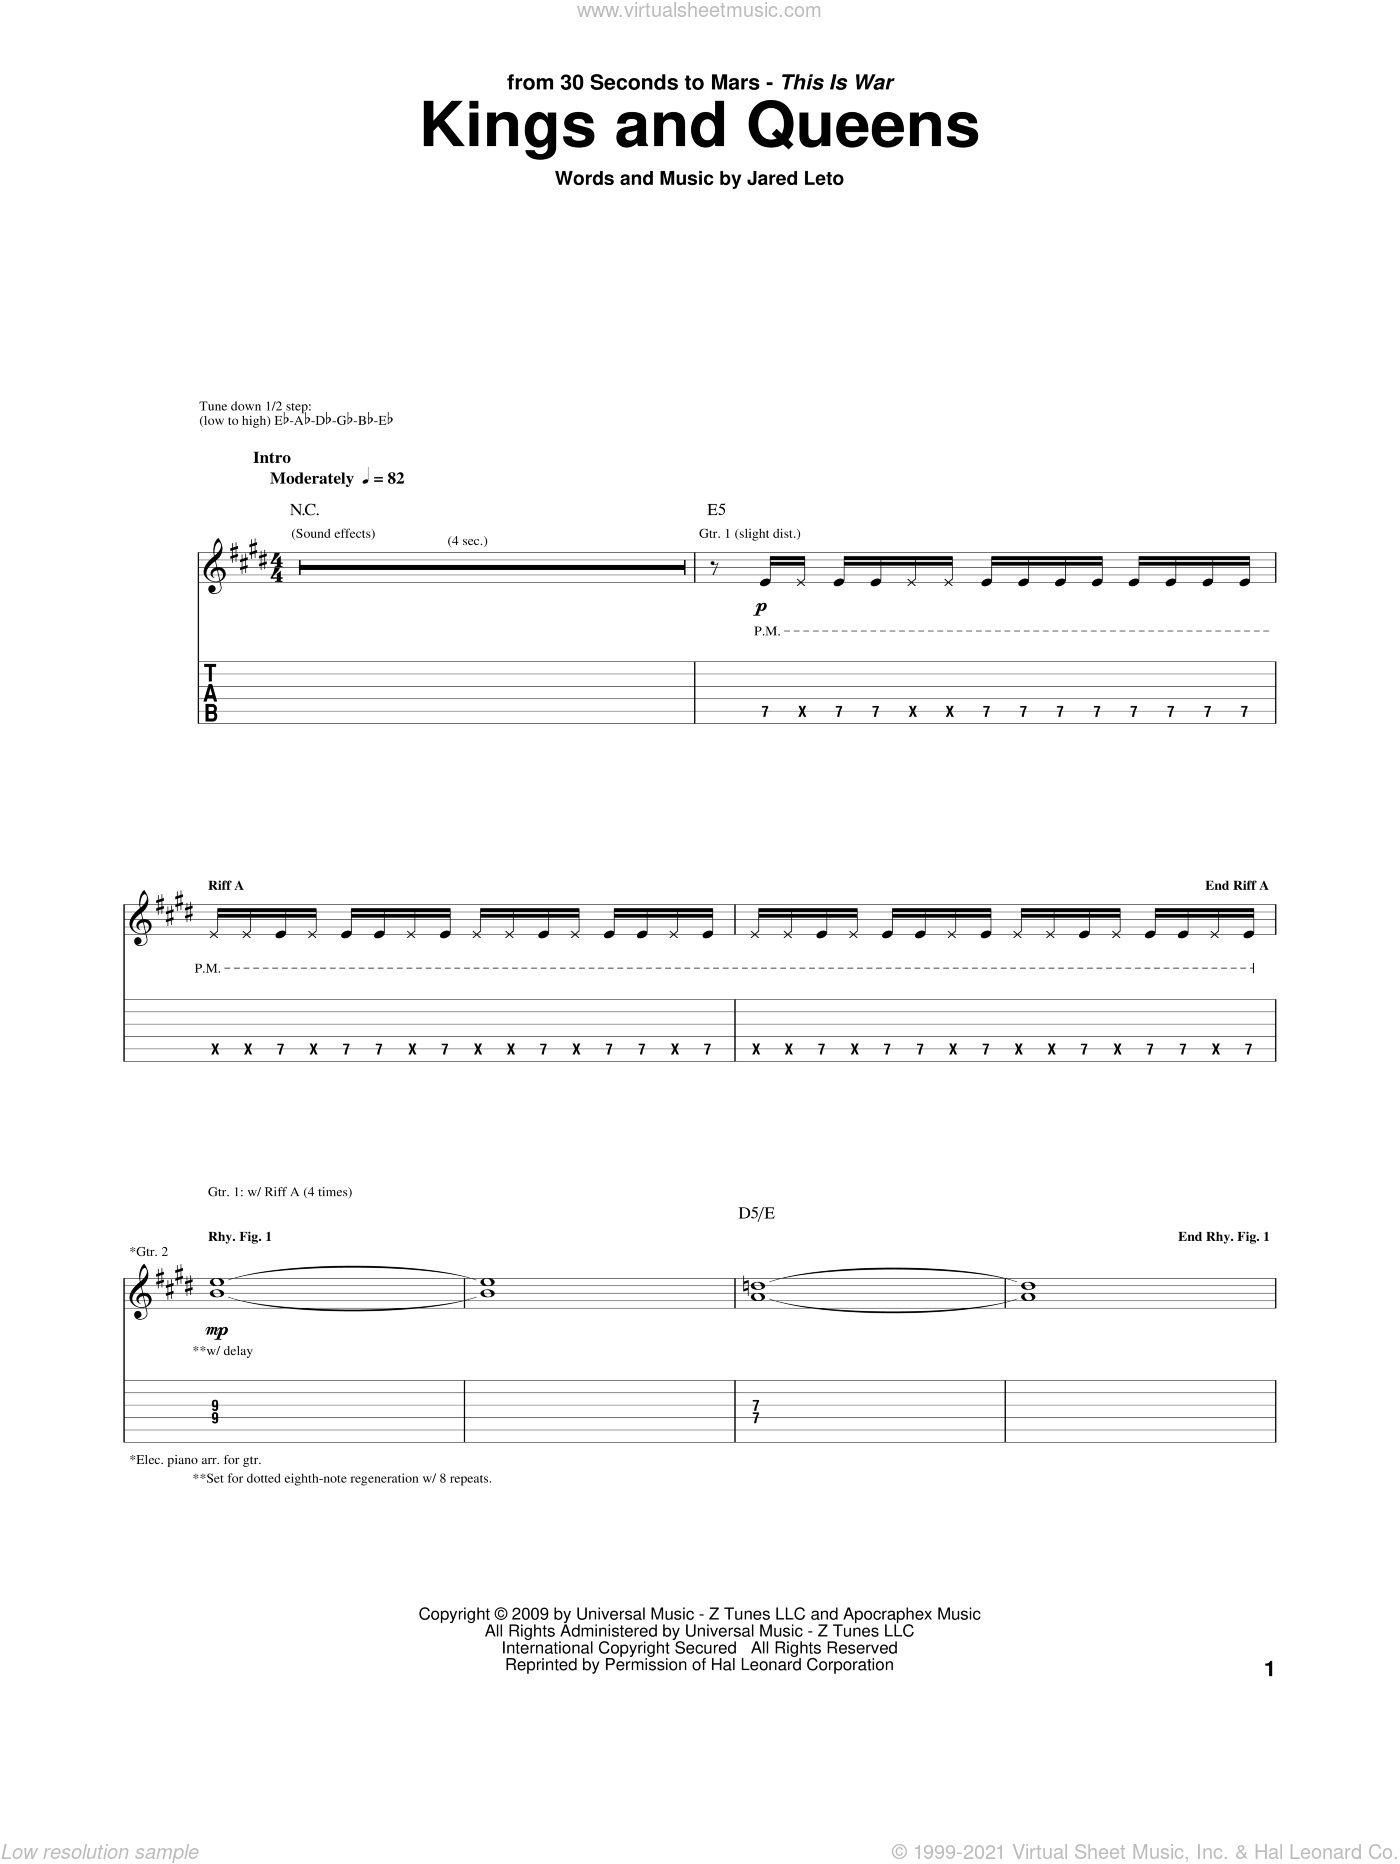 Kings And Queens sheet music for guitar (tablature) by 30 Seconds To Mars and Jared Leto, intermediate skill level